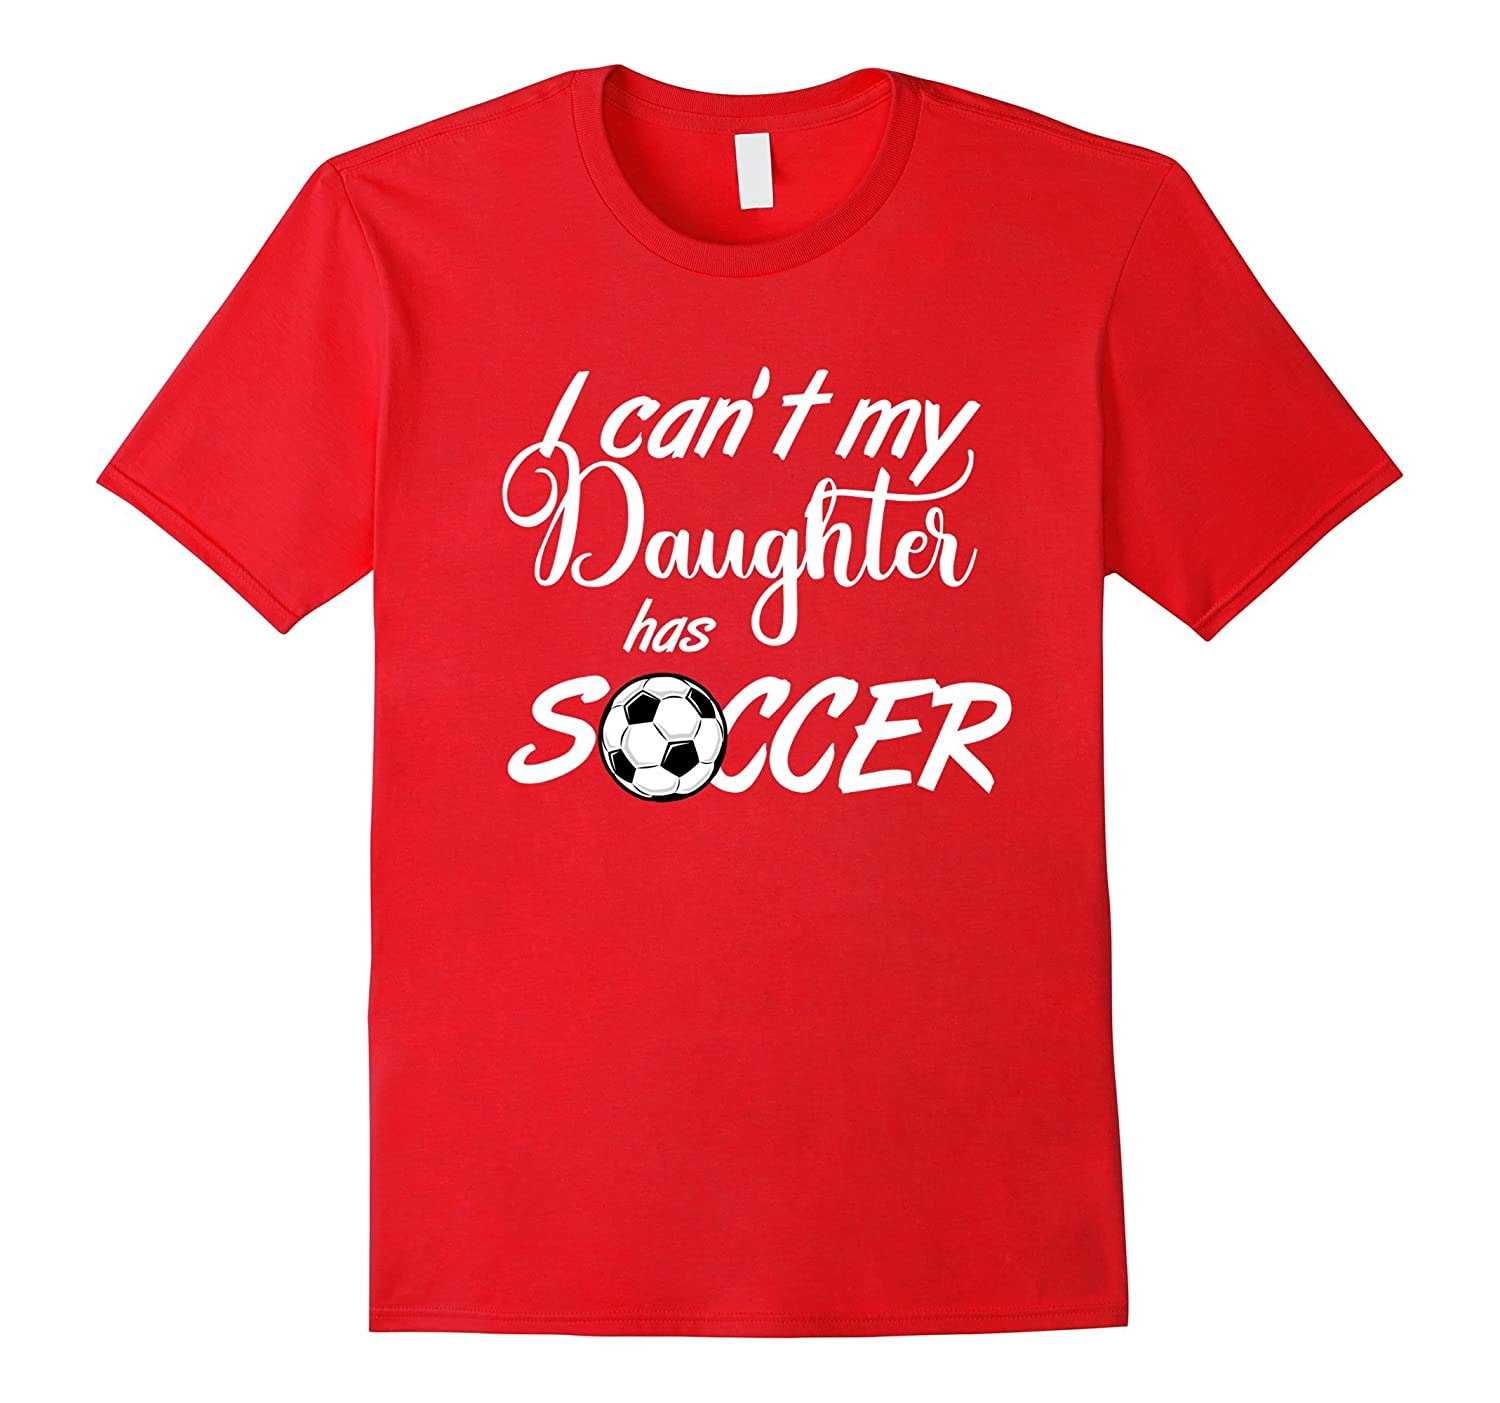 I Can't My Daughter has Soccer Practice T-Shirt Mom or Dad-T-Shirt